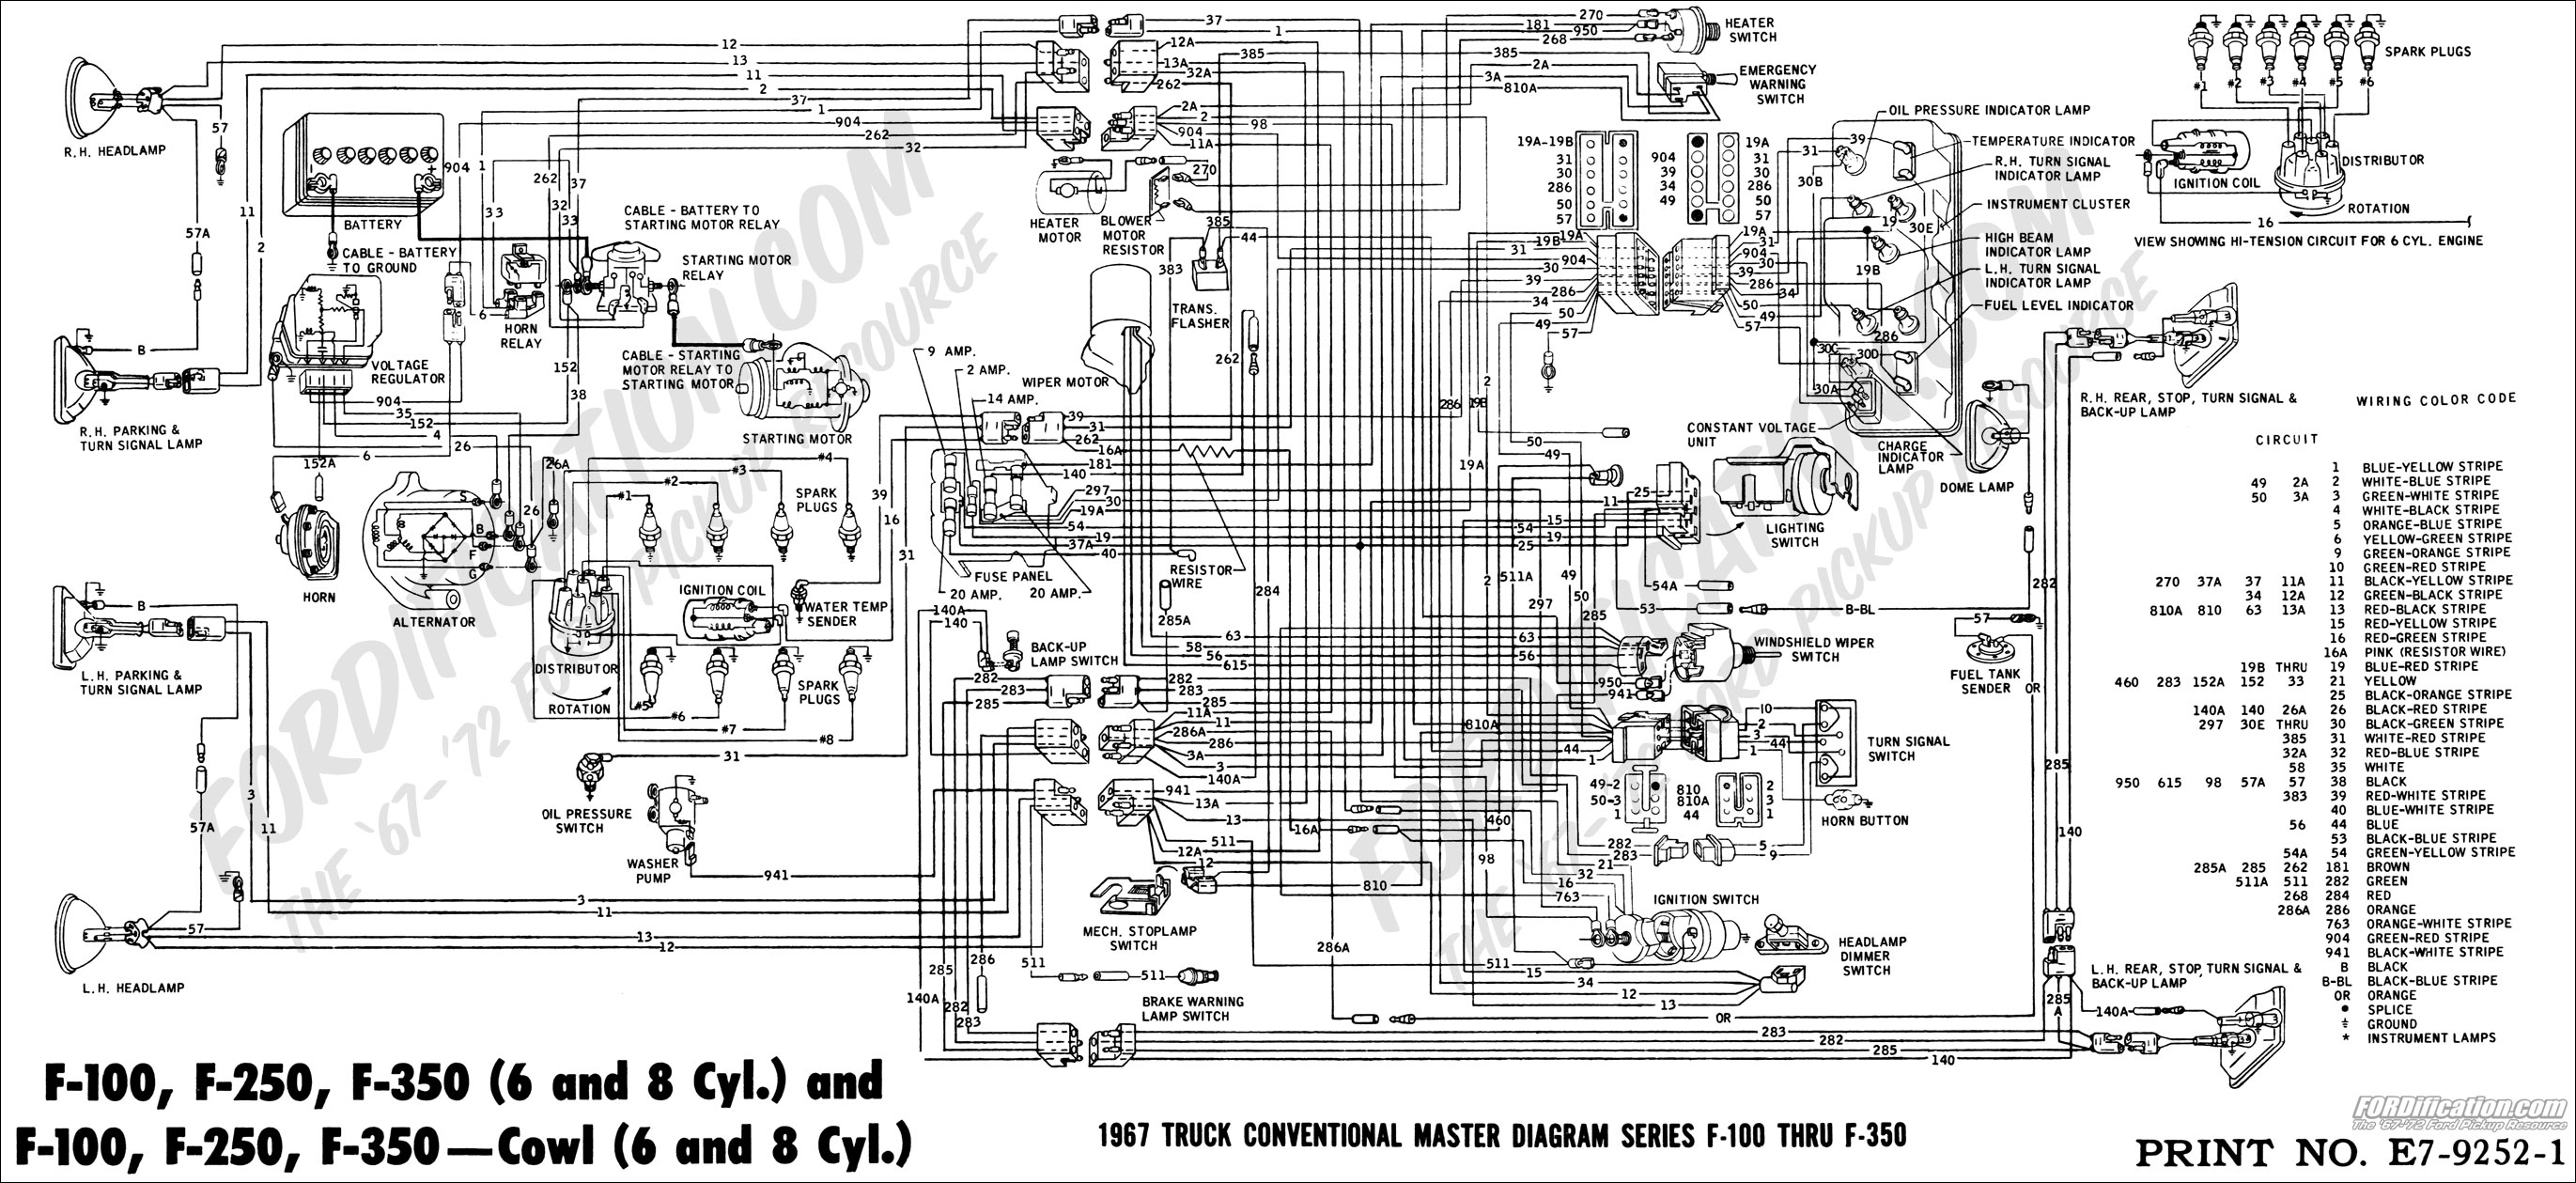 Ford Wire Diagram - Wiring Diagram Data - Ford Wiring Diagram